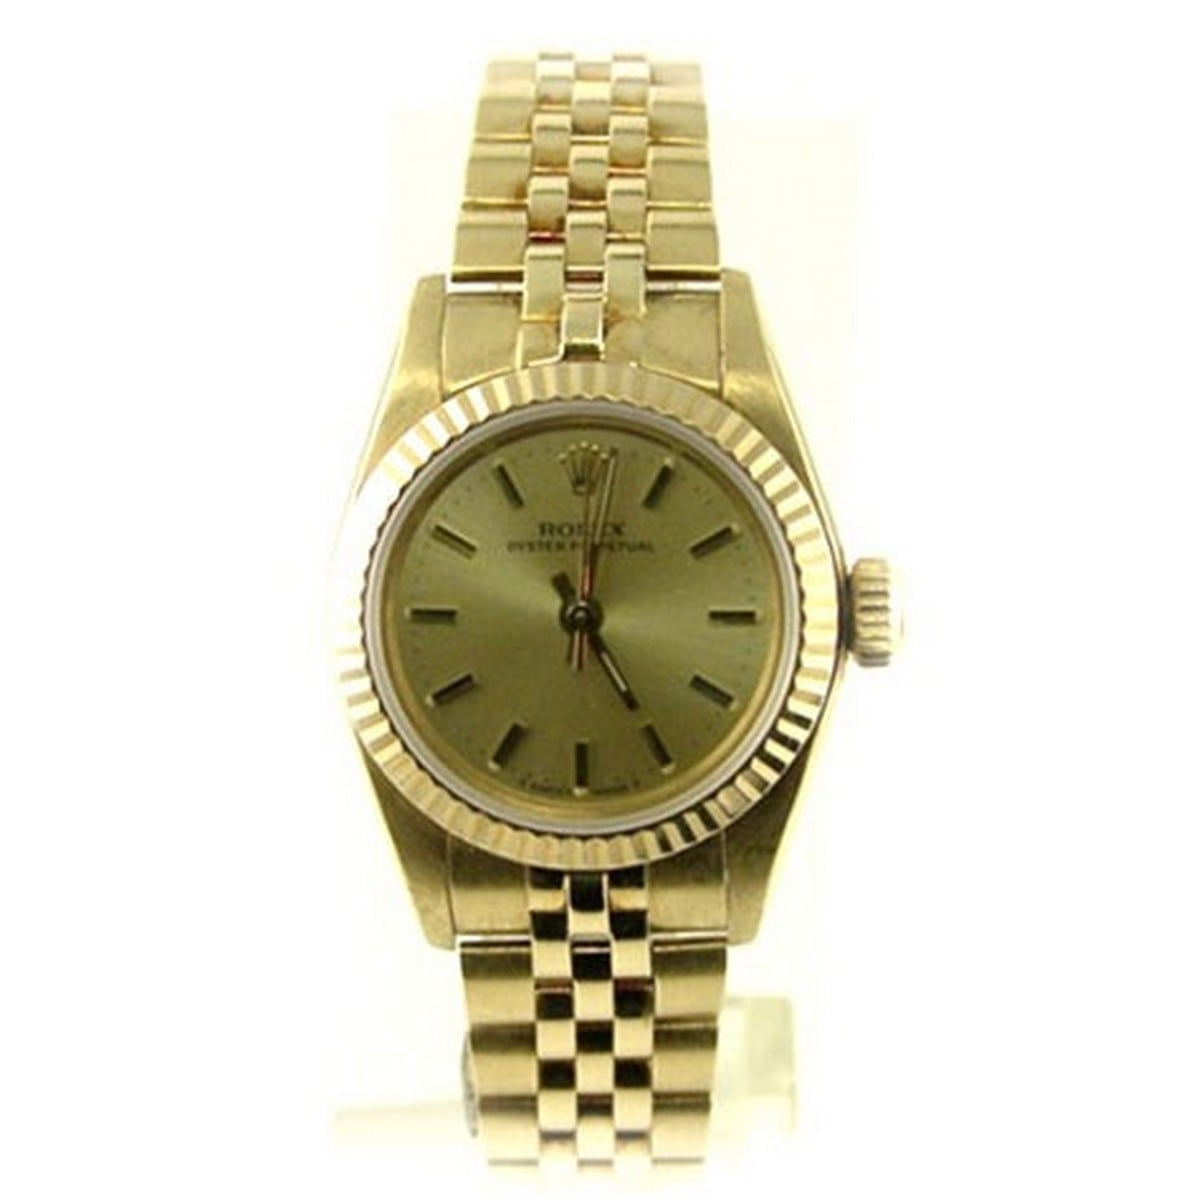 rolex oyster perpetual date nationalwatch